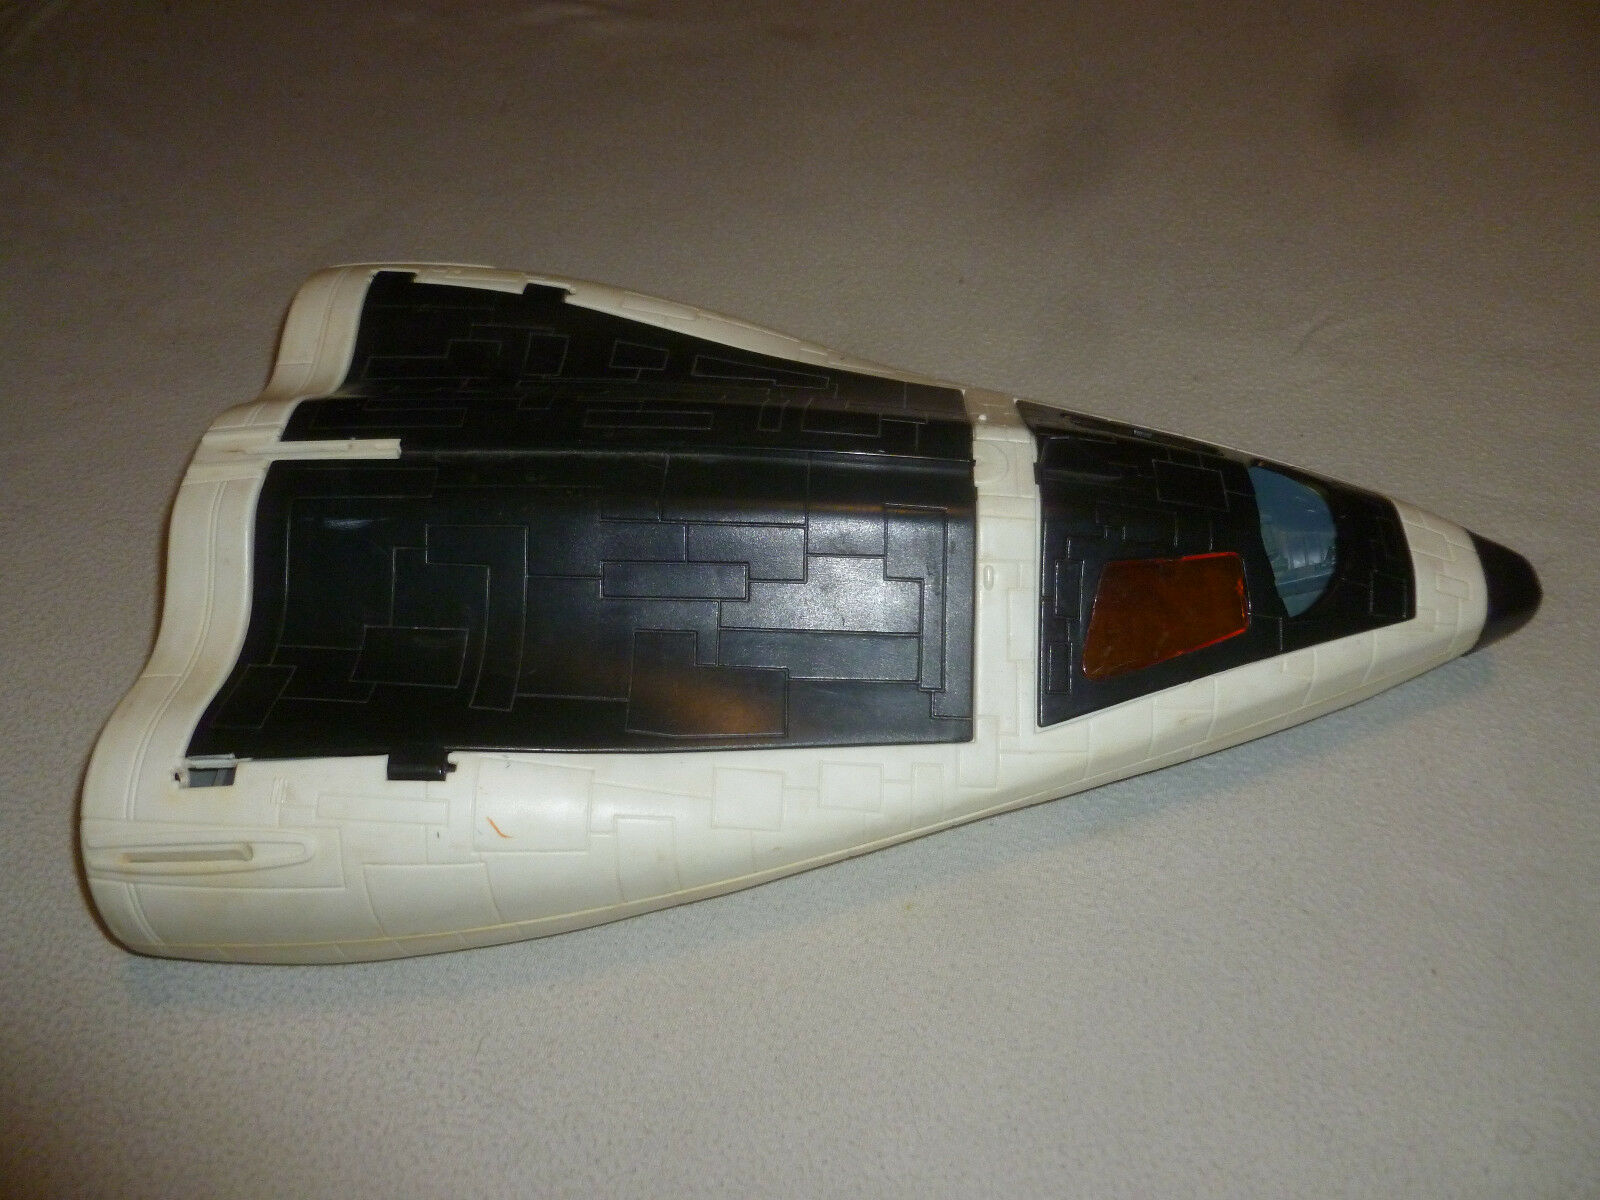 VINTAGE GI JOE CRUSADER SPACE SHUTTLE  HASBRO 1989 INCOMPLETE FOR PARTS ONLY